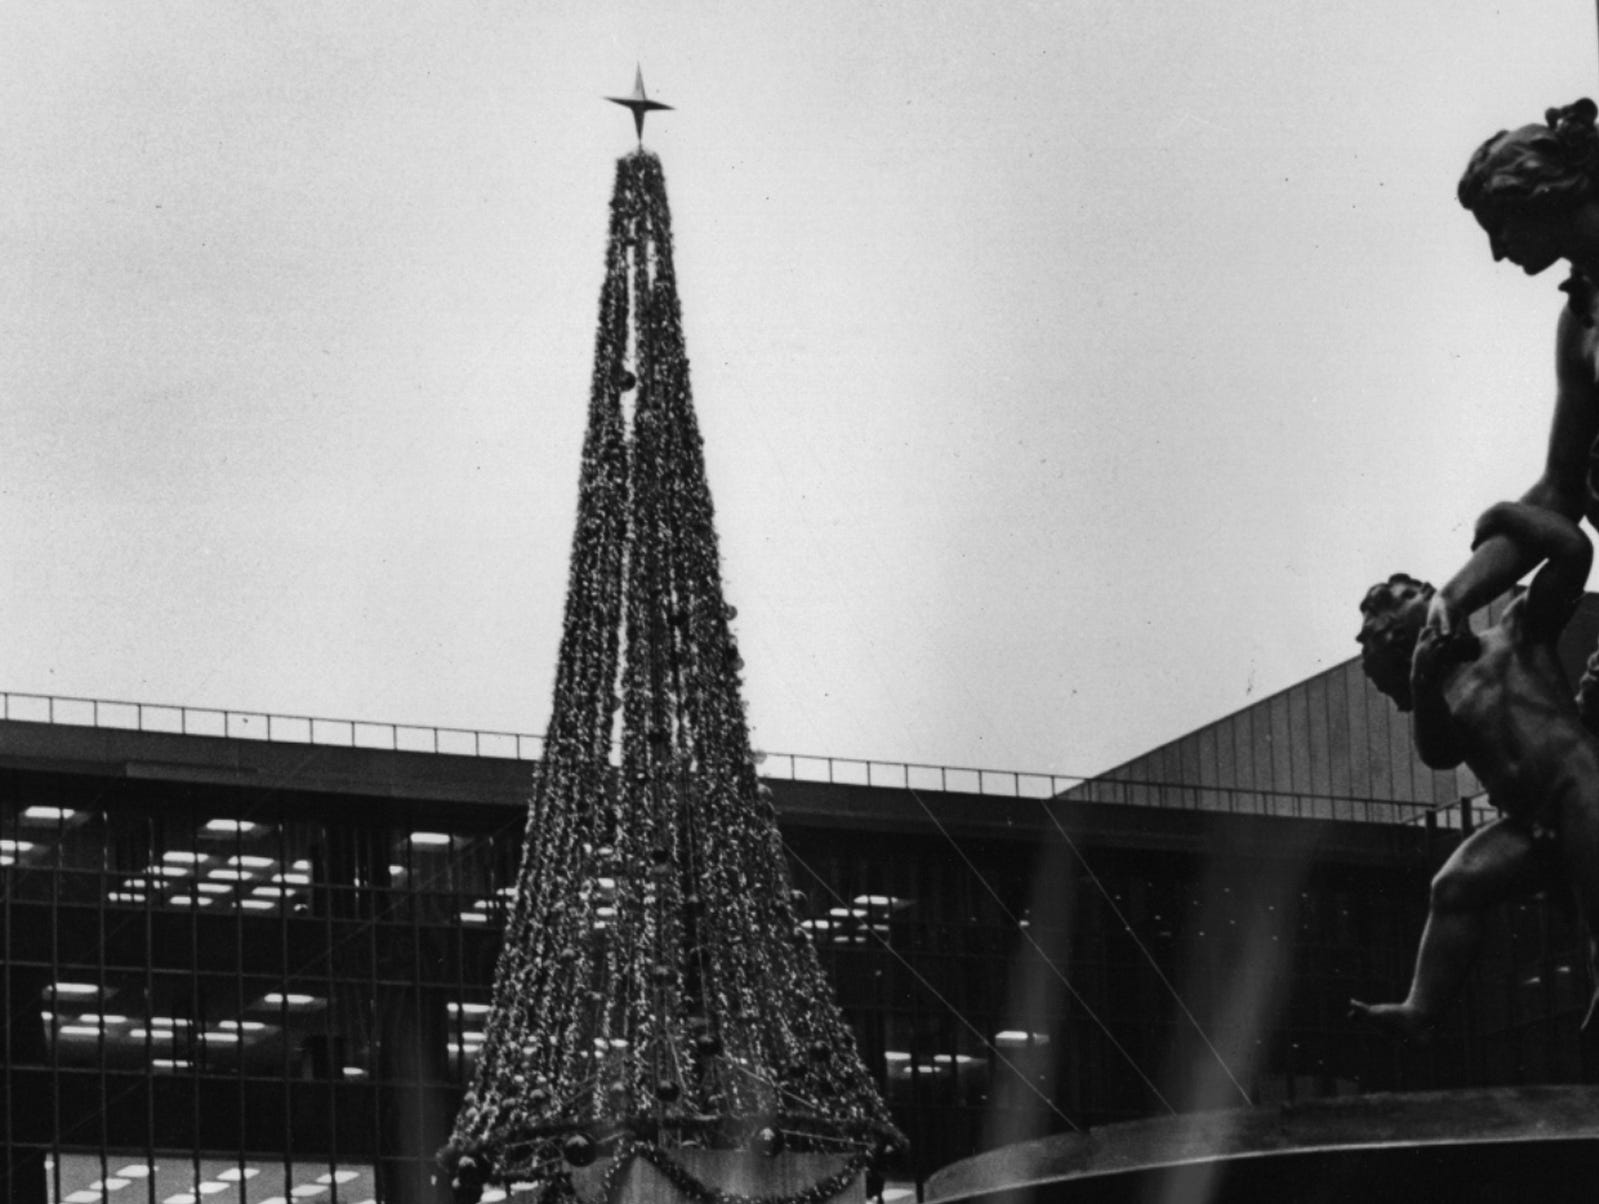 1971: A new 50-foot Christmas tree towers over passersby at Fountain Square Plaza. The tree, a donation from Procter & Gamble Co., has 2000 multicolored lights to blend with the lights which will be placed on the 20 live trees on the square.